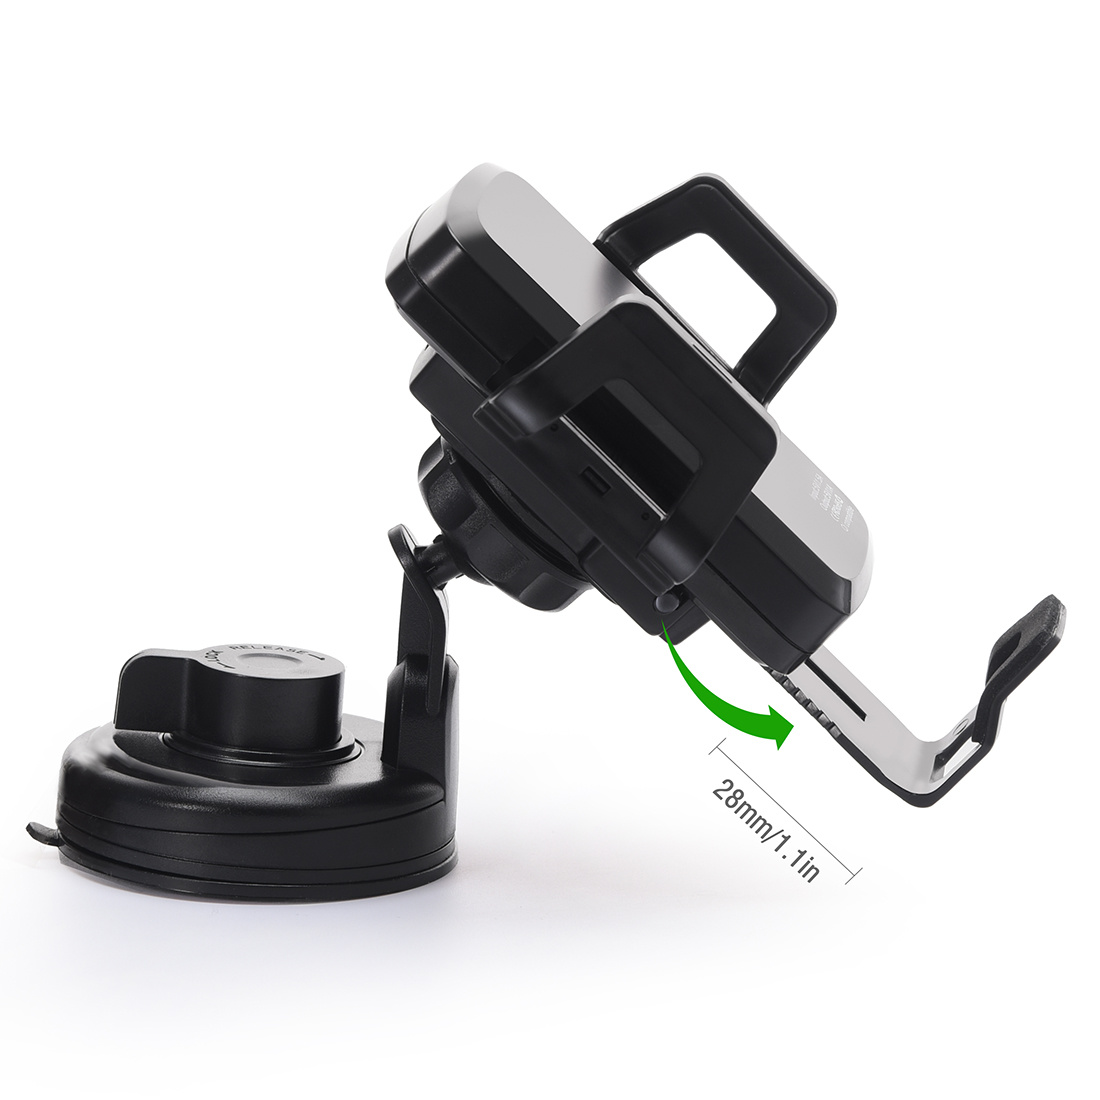 Wireless Phone Charging Bracket Car Charger Car Electronics Wireless Charger